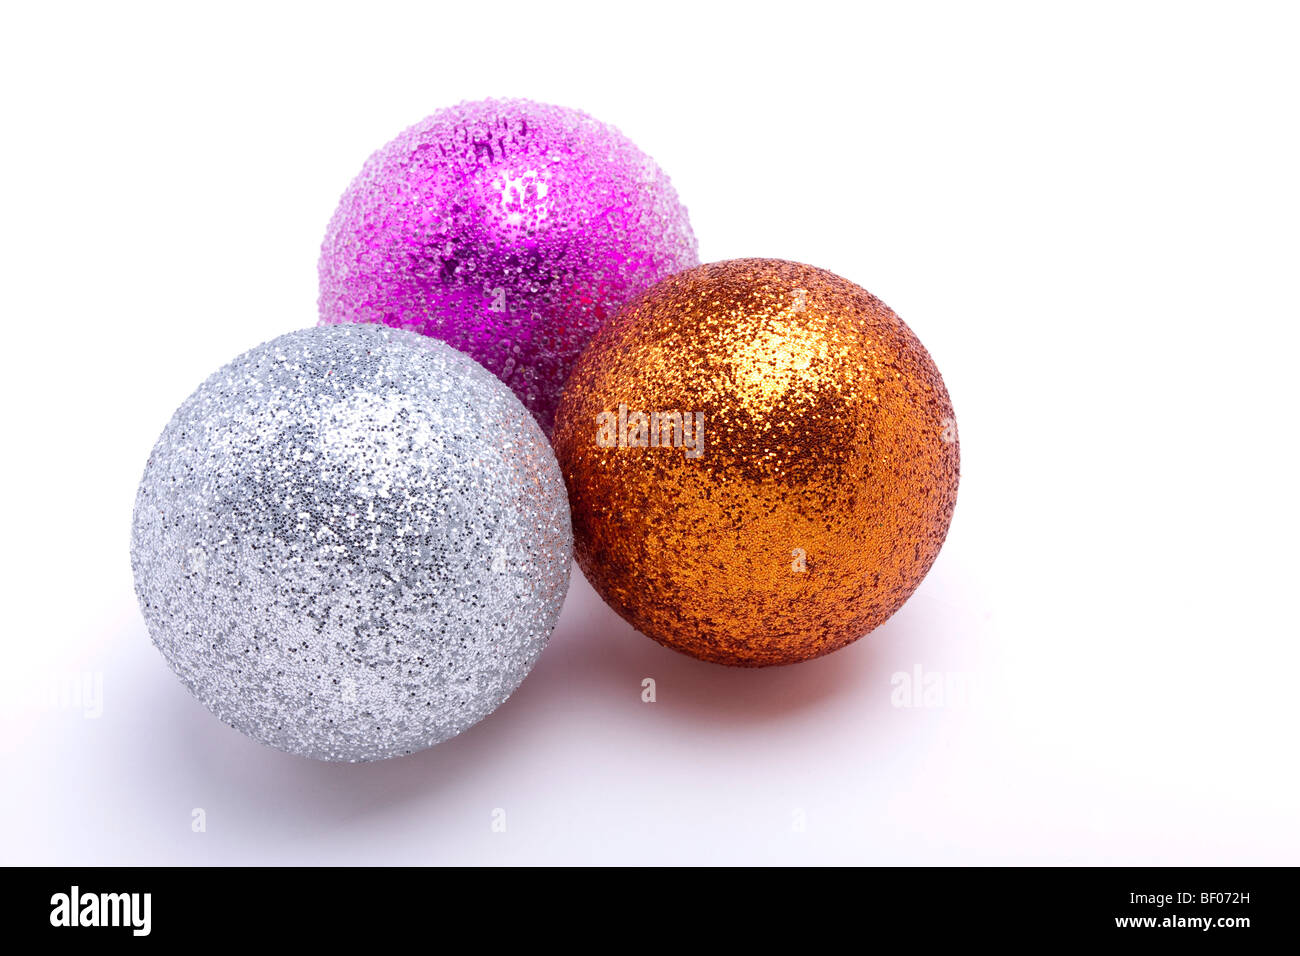 christmas bauble decorations isolated against white background cut out stock image - Cut Out Christmas Decorations